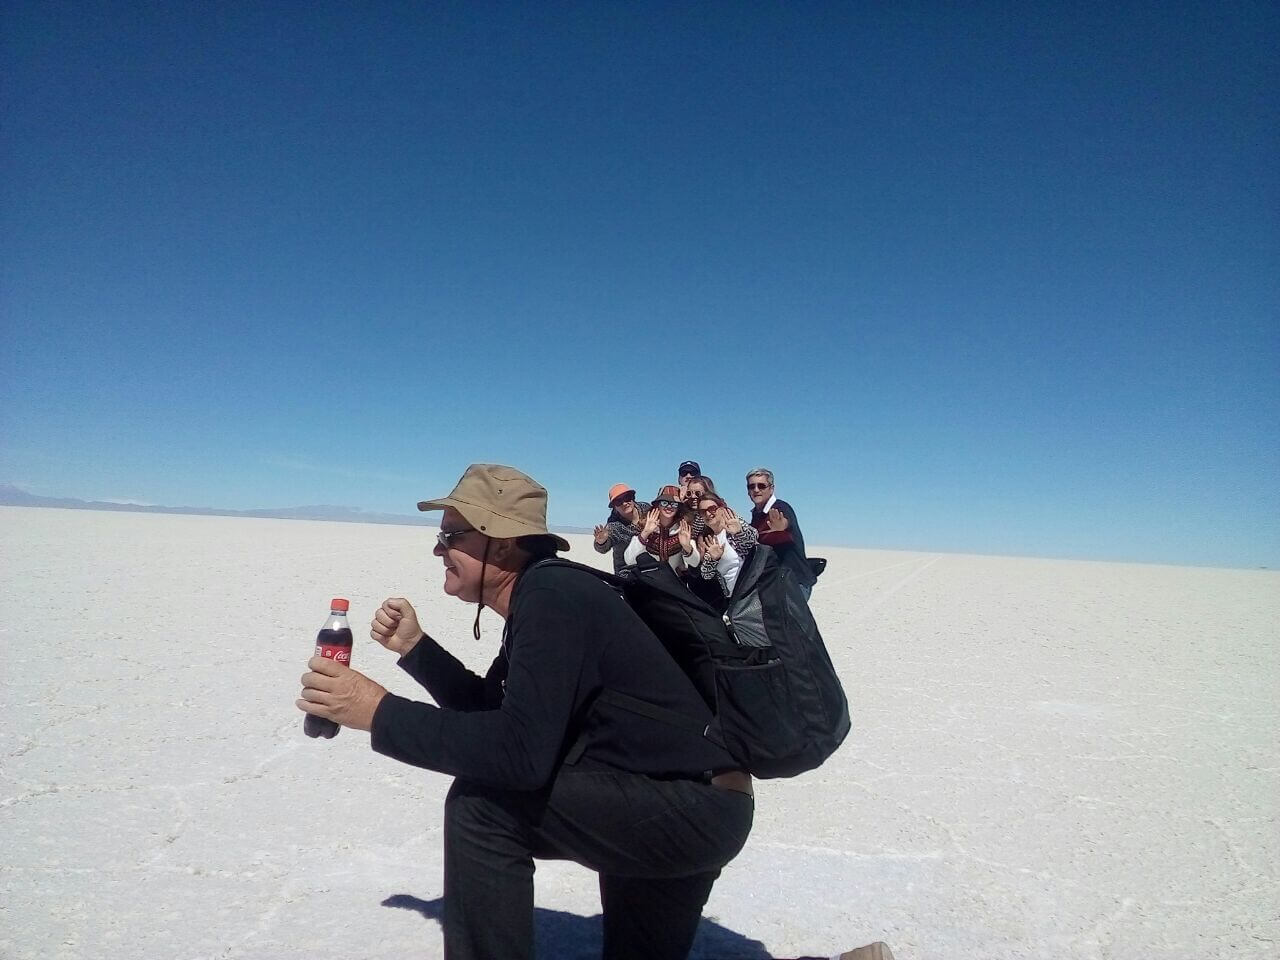 perspectieve photo, Uyuni salt flats